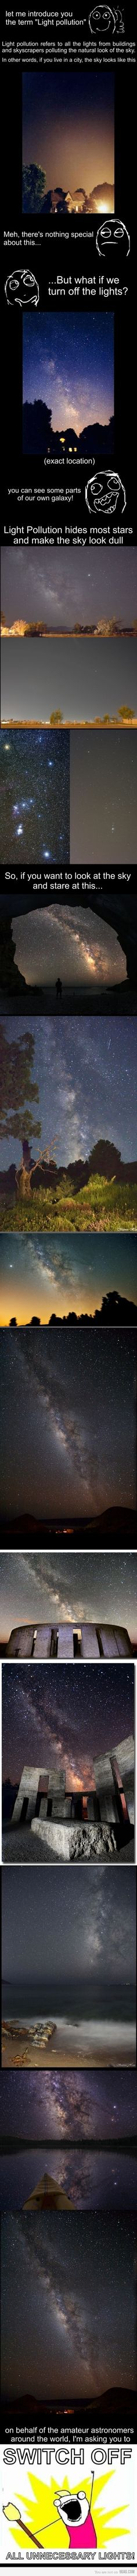 what is light pollution ?!